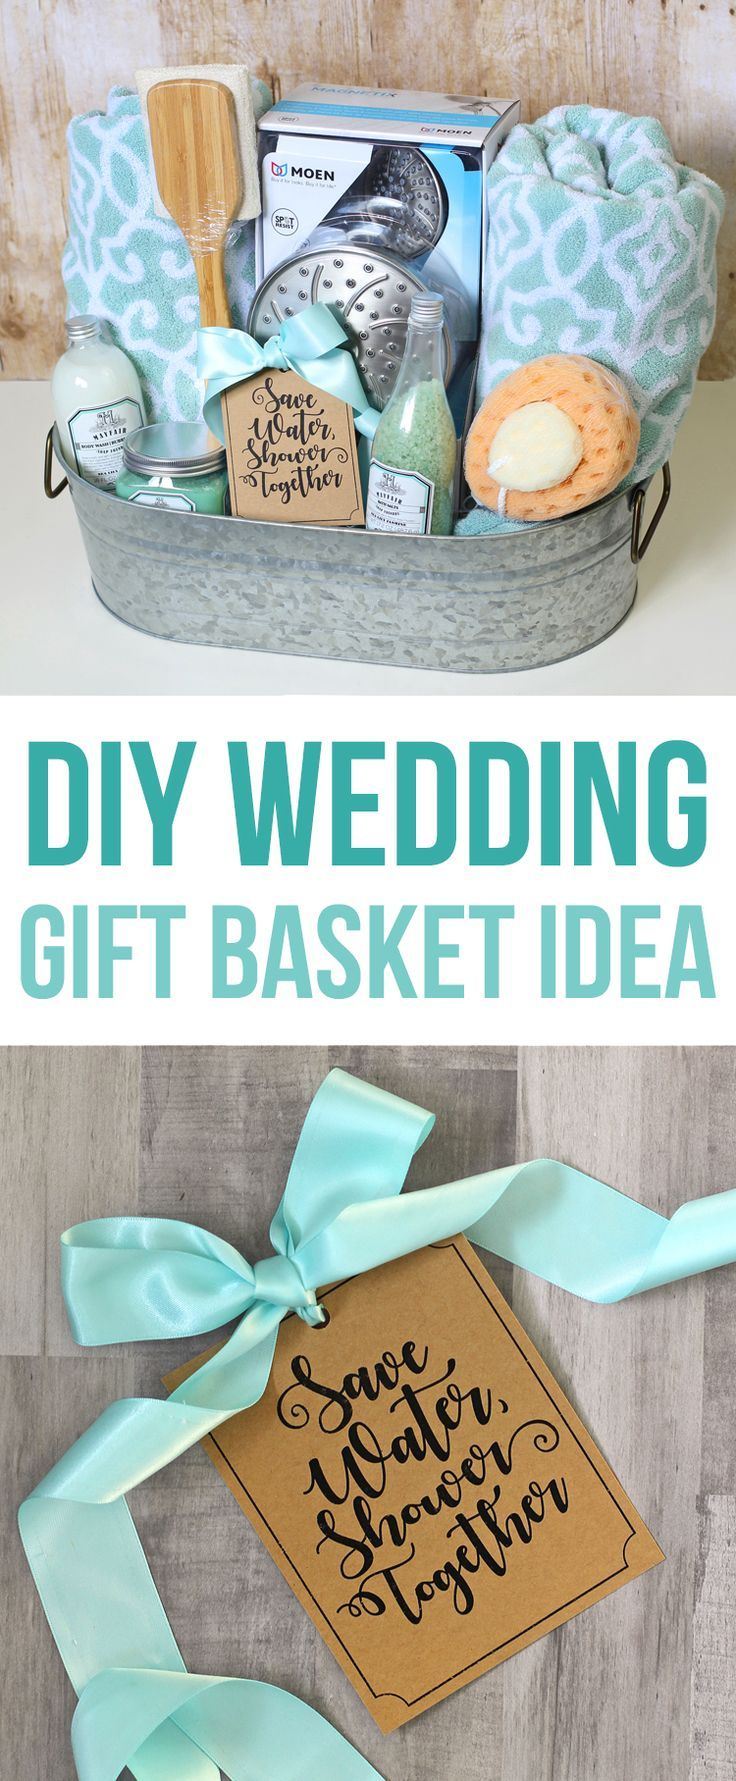 Shower Themed DIY Wedding Gift Basket Idea | Pinterest | Metal tins ...